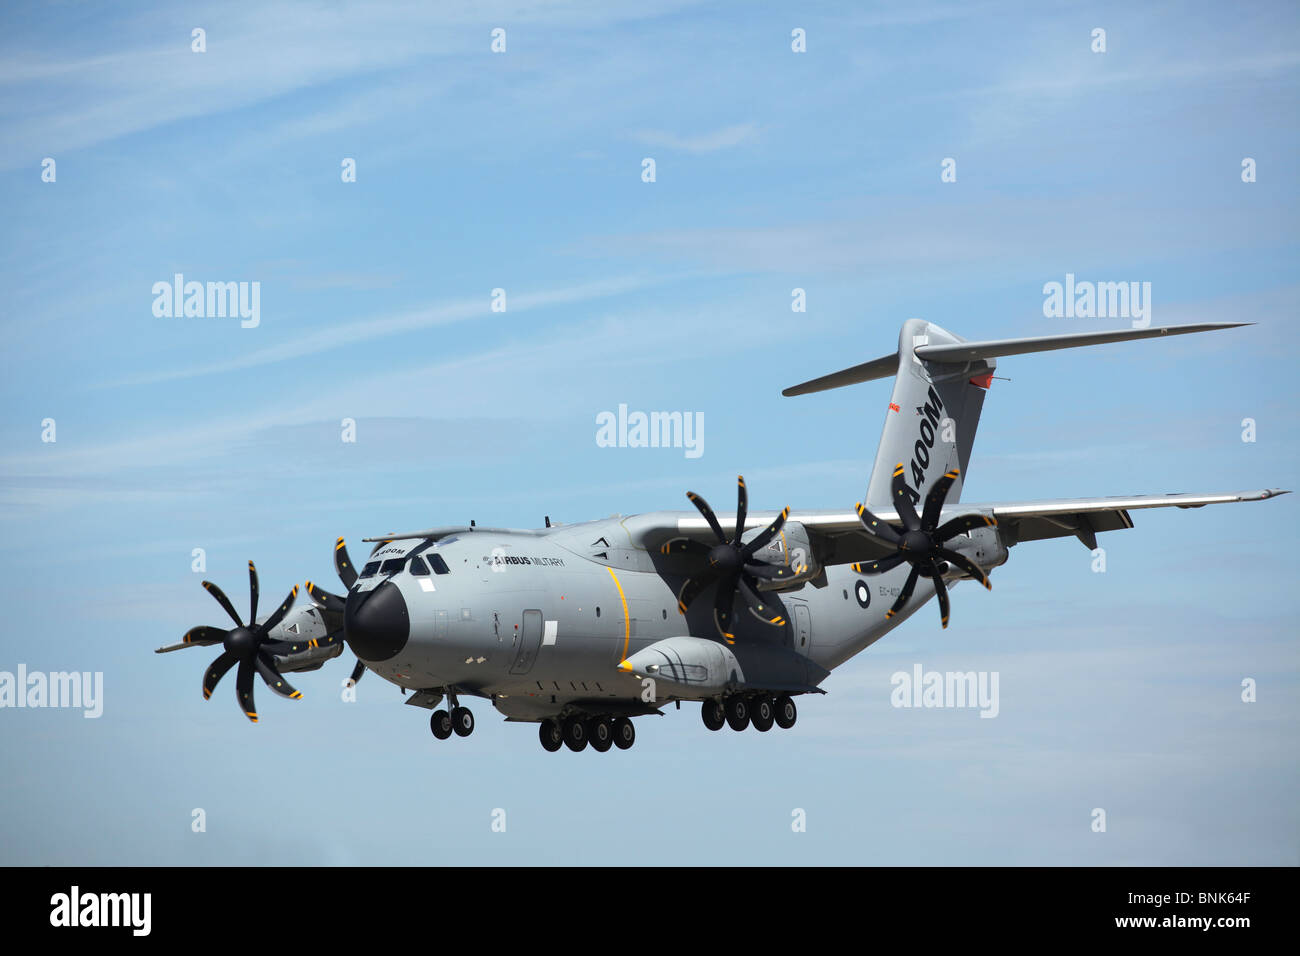 An Airbus A400M military airplane - Stock Image